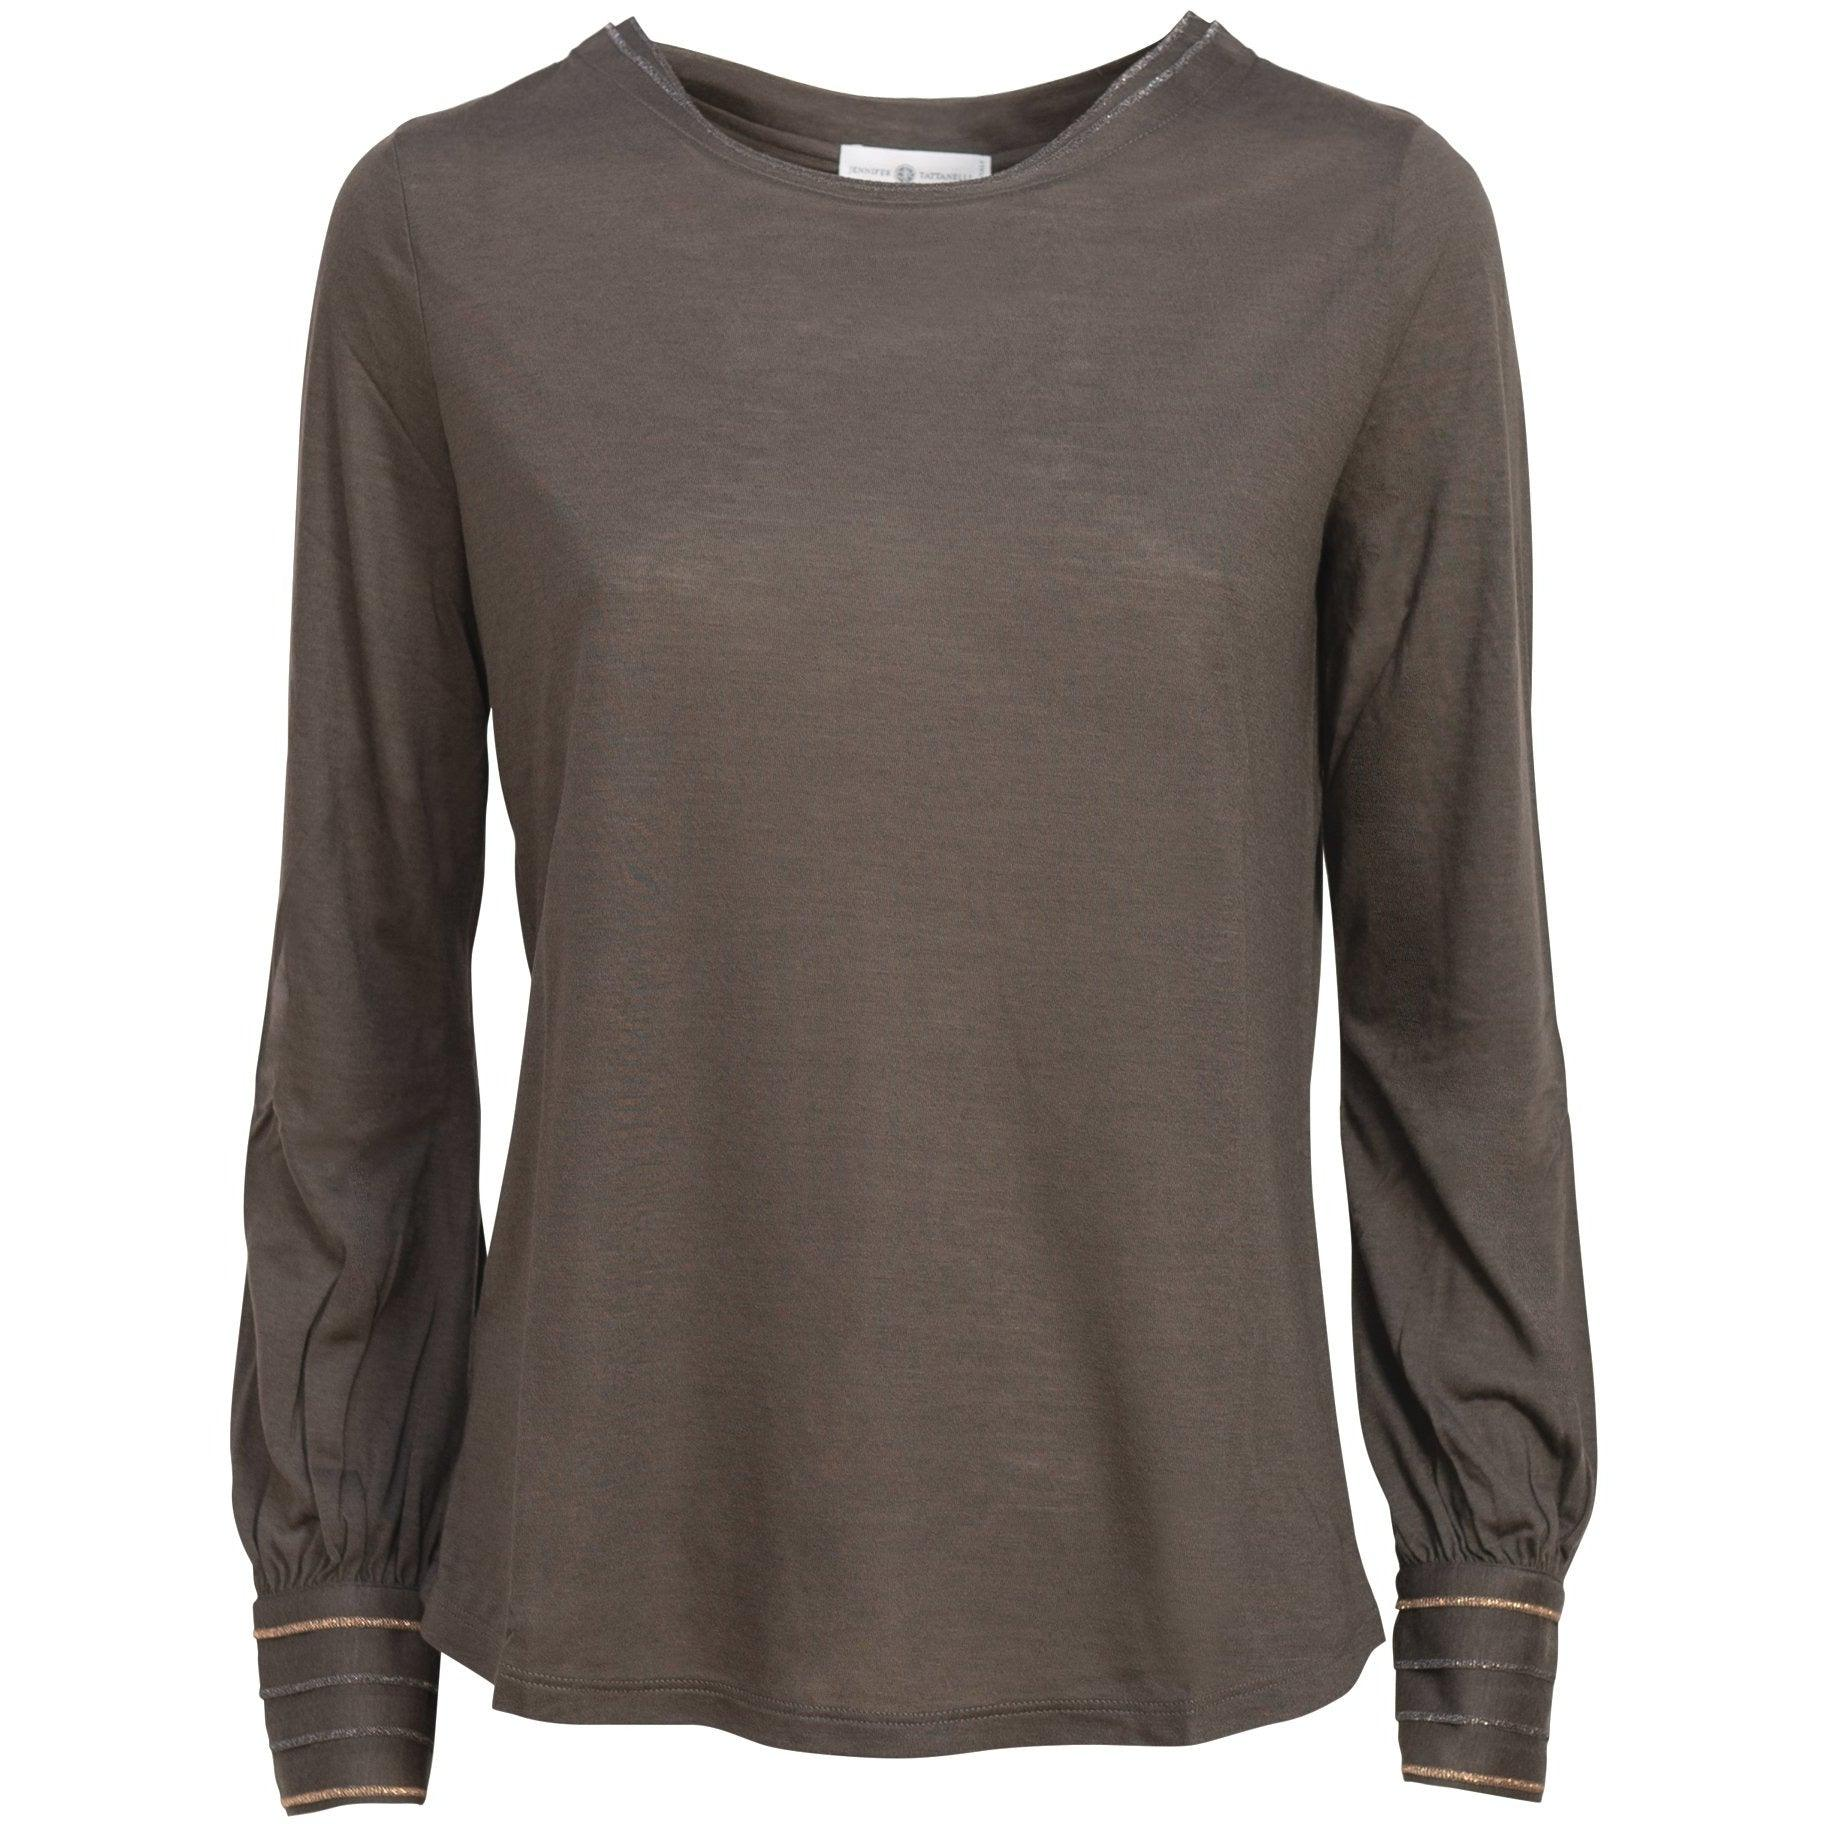 Women Cuffed Sleeve Modal Top in Brown